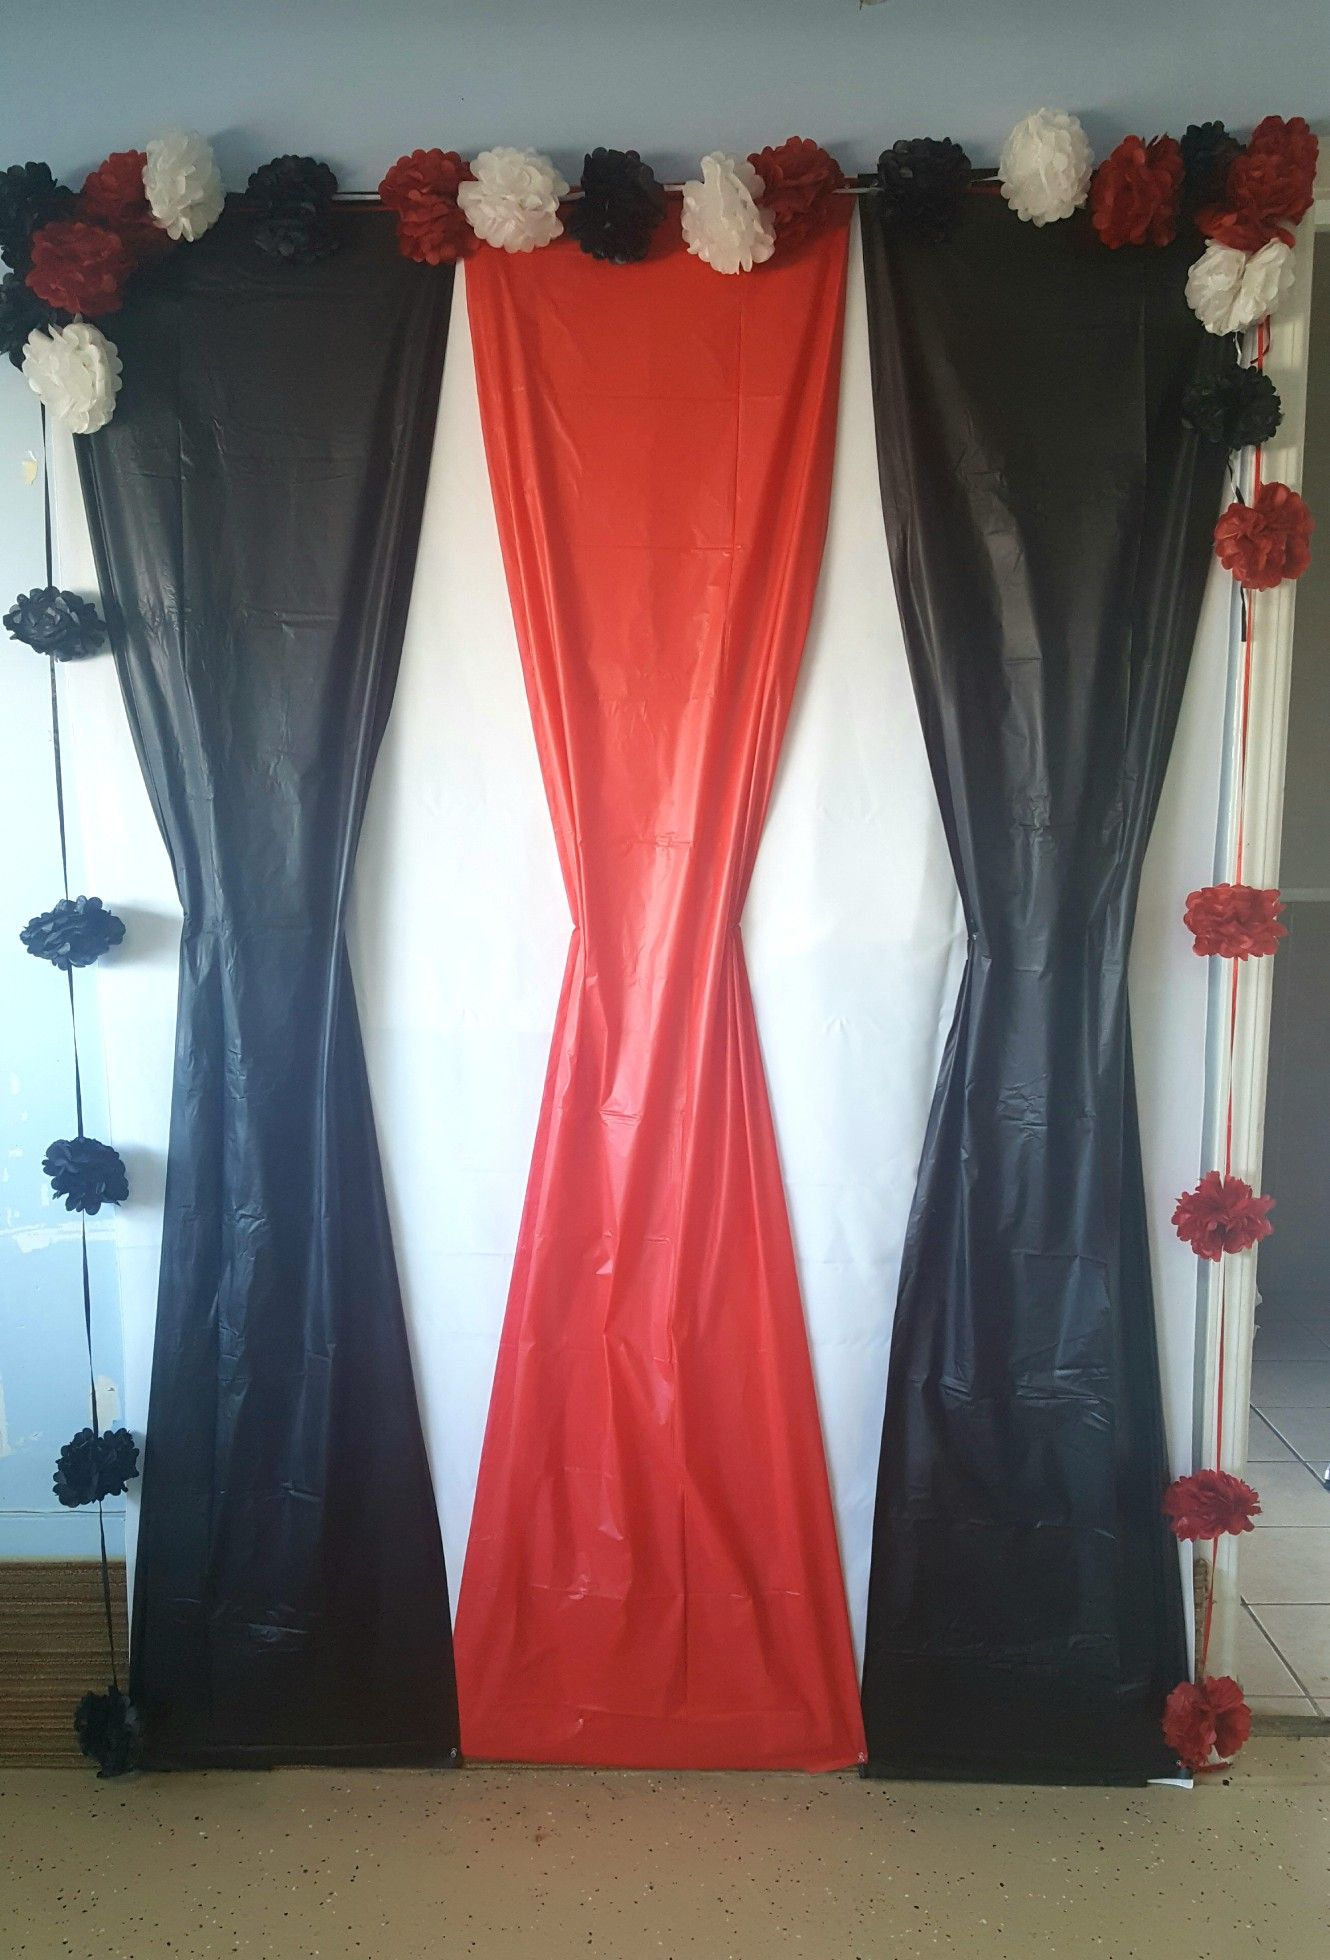 Diy Dollar Tree Backdrop Red Black White Party Theme White Party Theme White Party Decorations Red Party Decorations